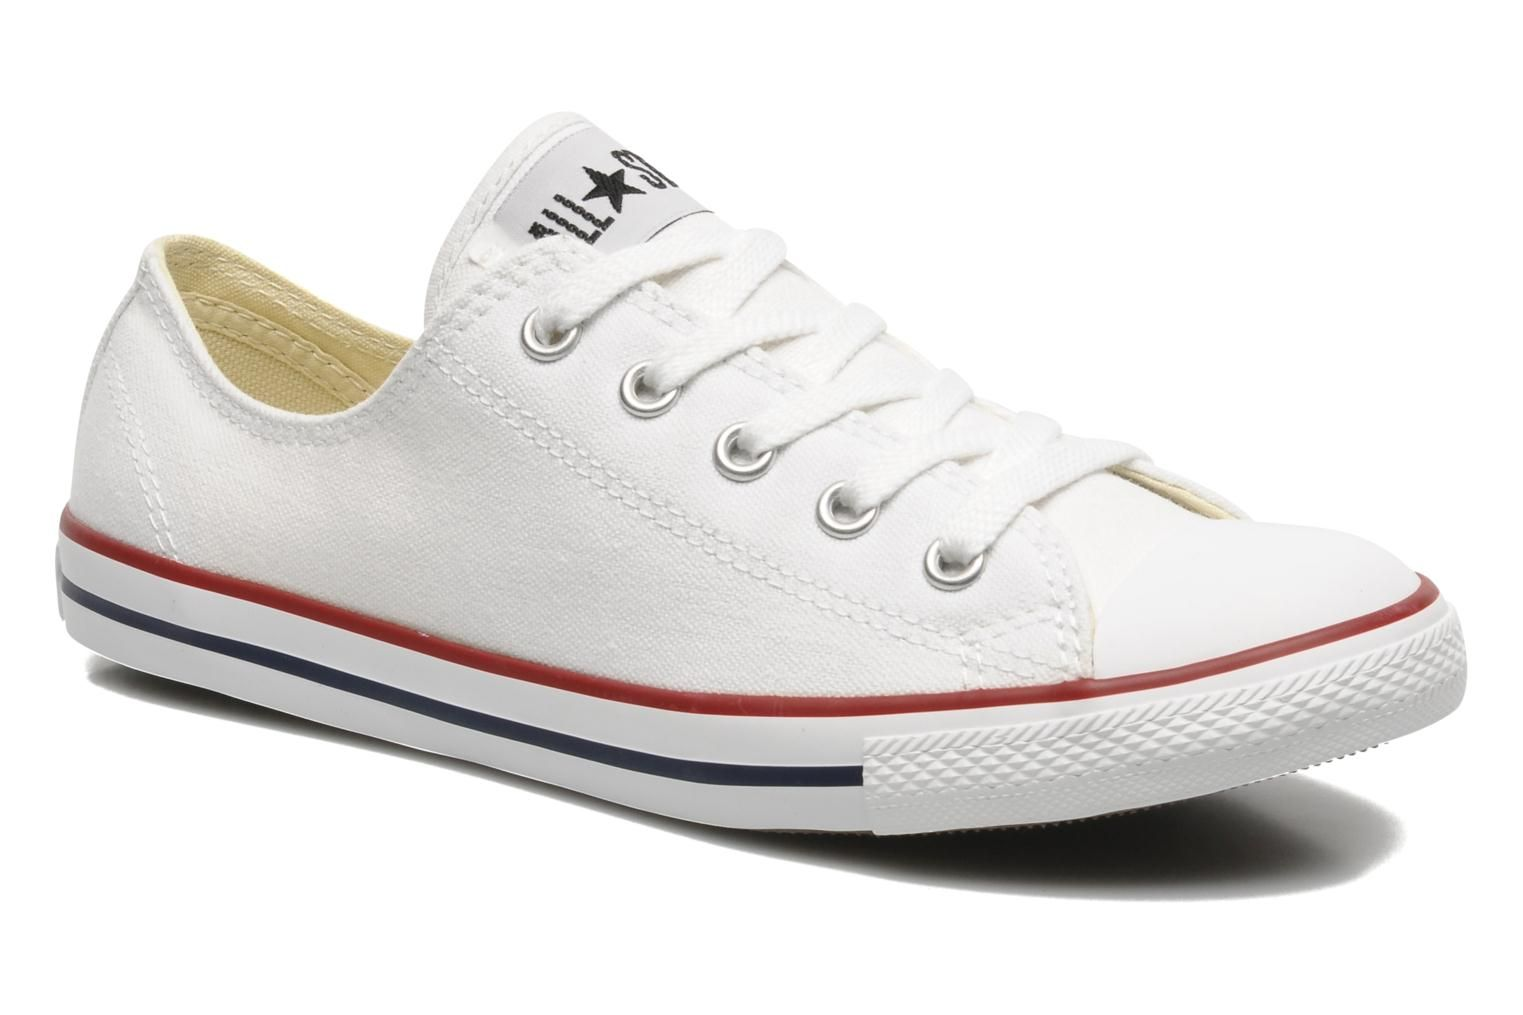 converse dainty blanche femme